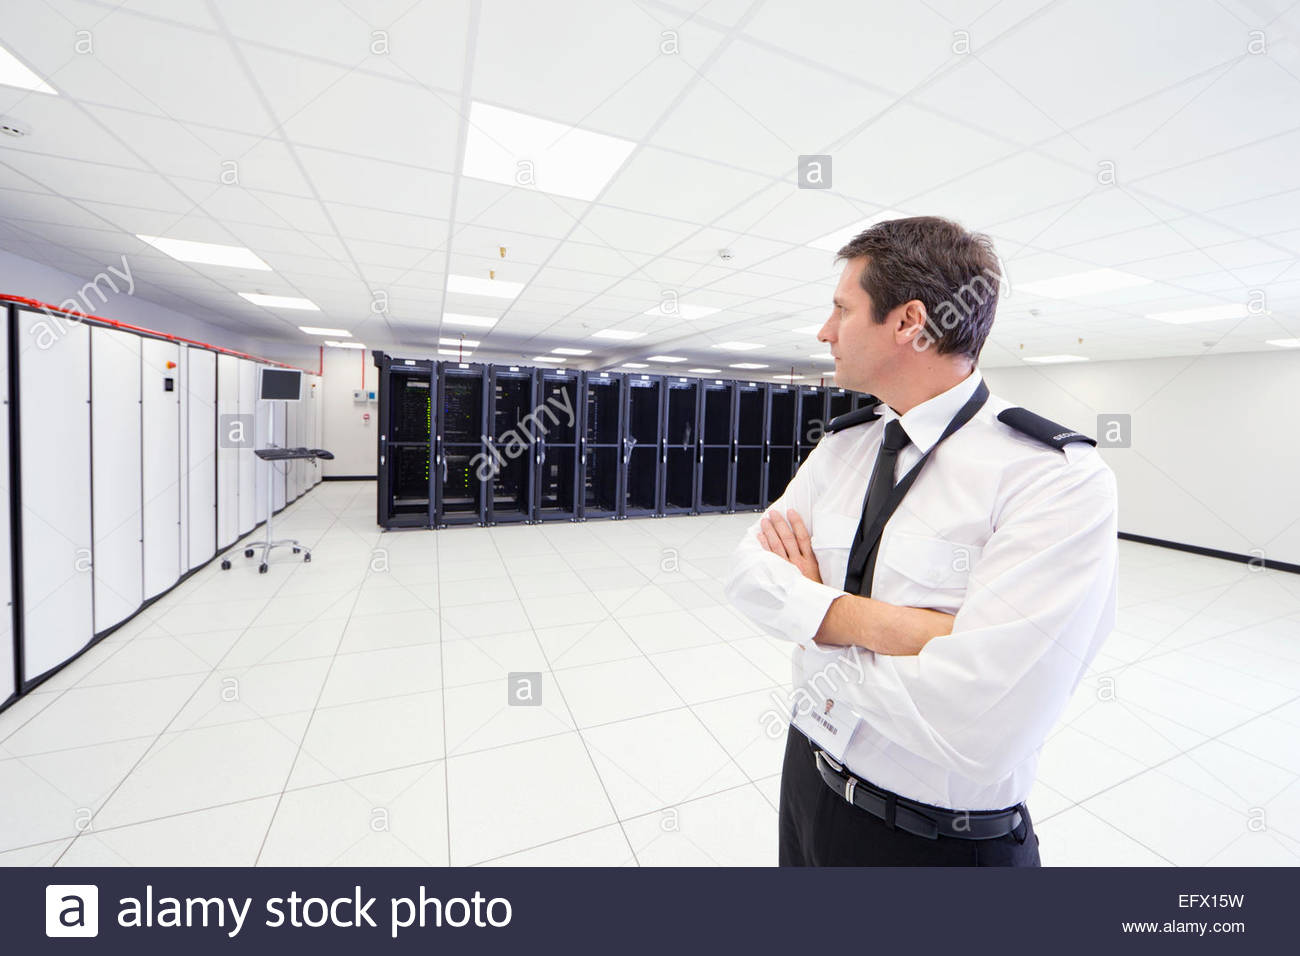 Security guard standing with arms crossed in server room - Stock Image